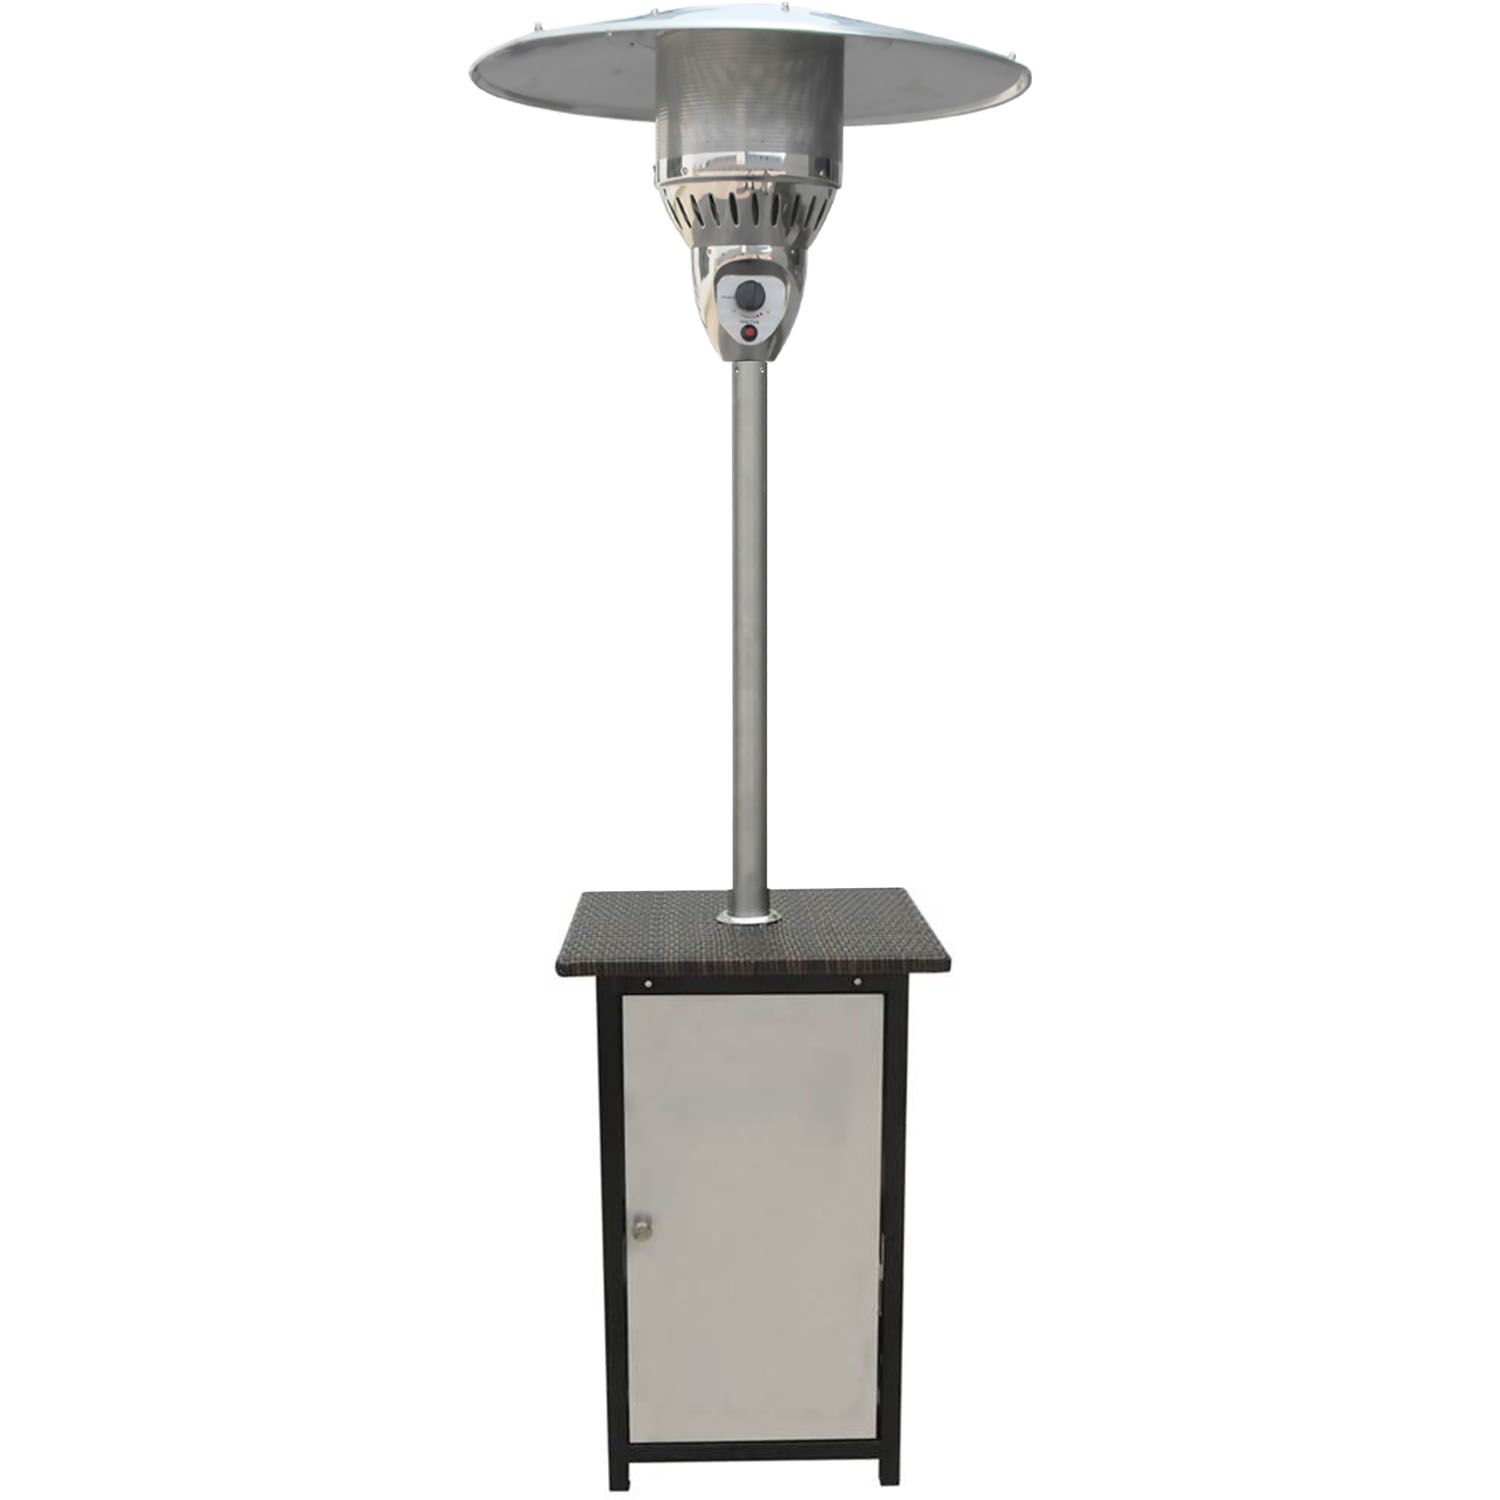 Hanover 7-Ft. 41,000 BTU Square Steel Patio Heater with Stainless Steel Finish by Hanover